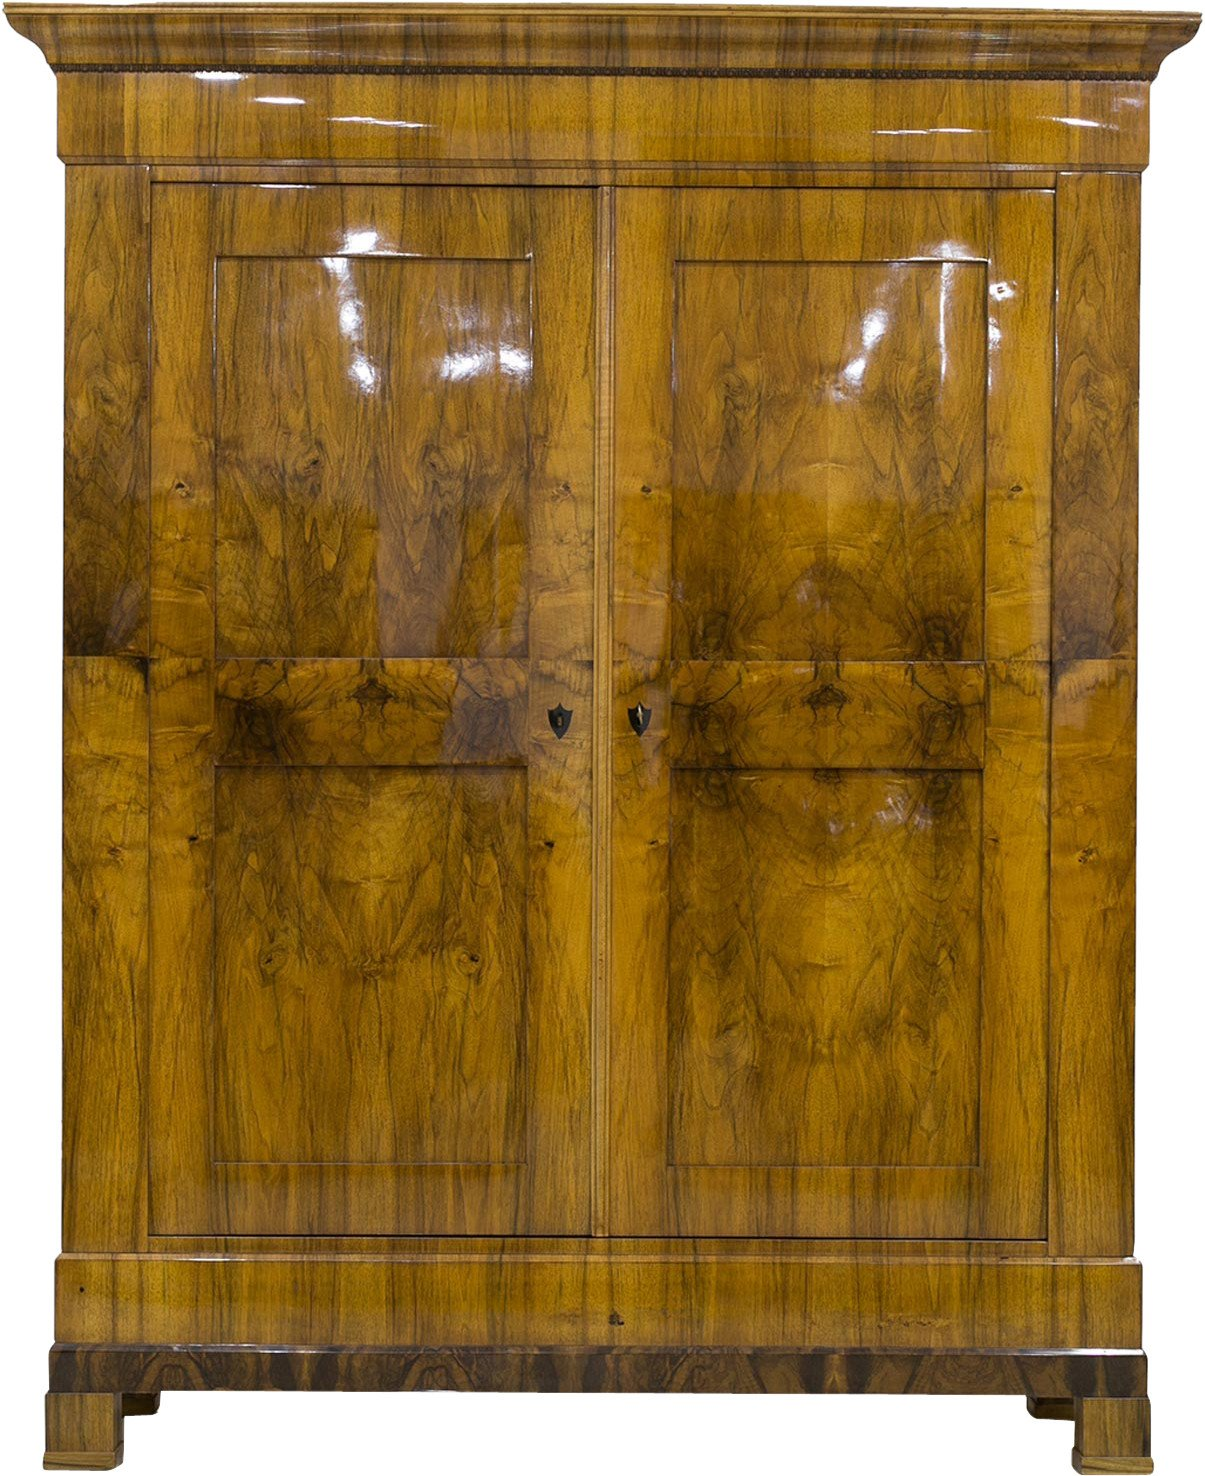 Wardrobe, around 1830